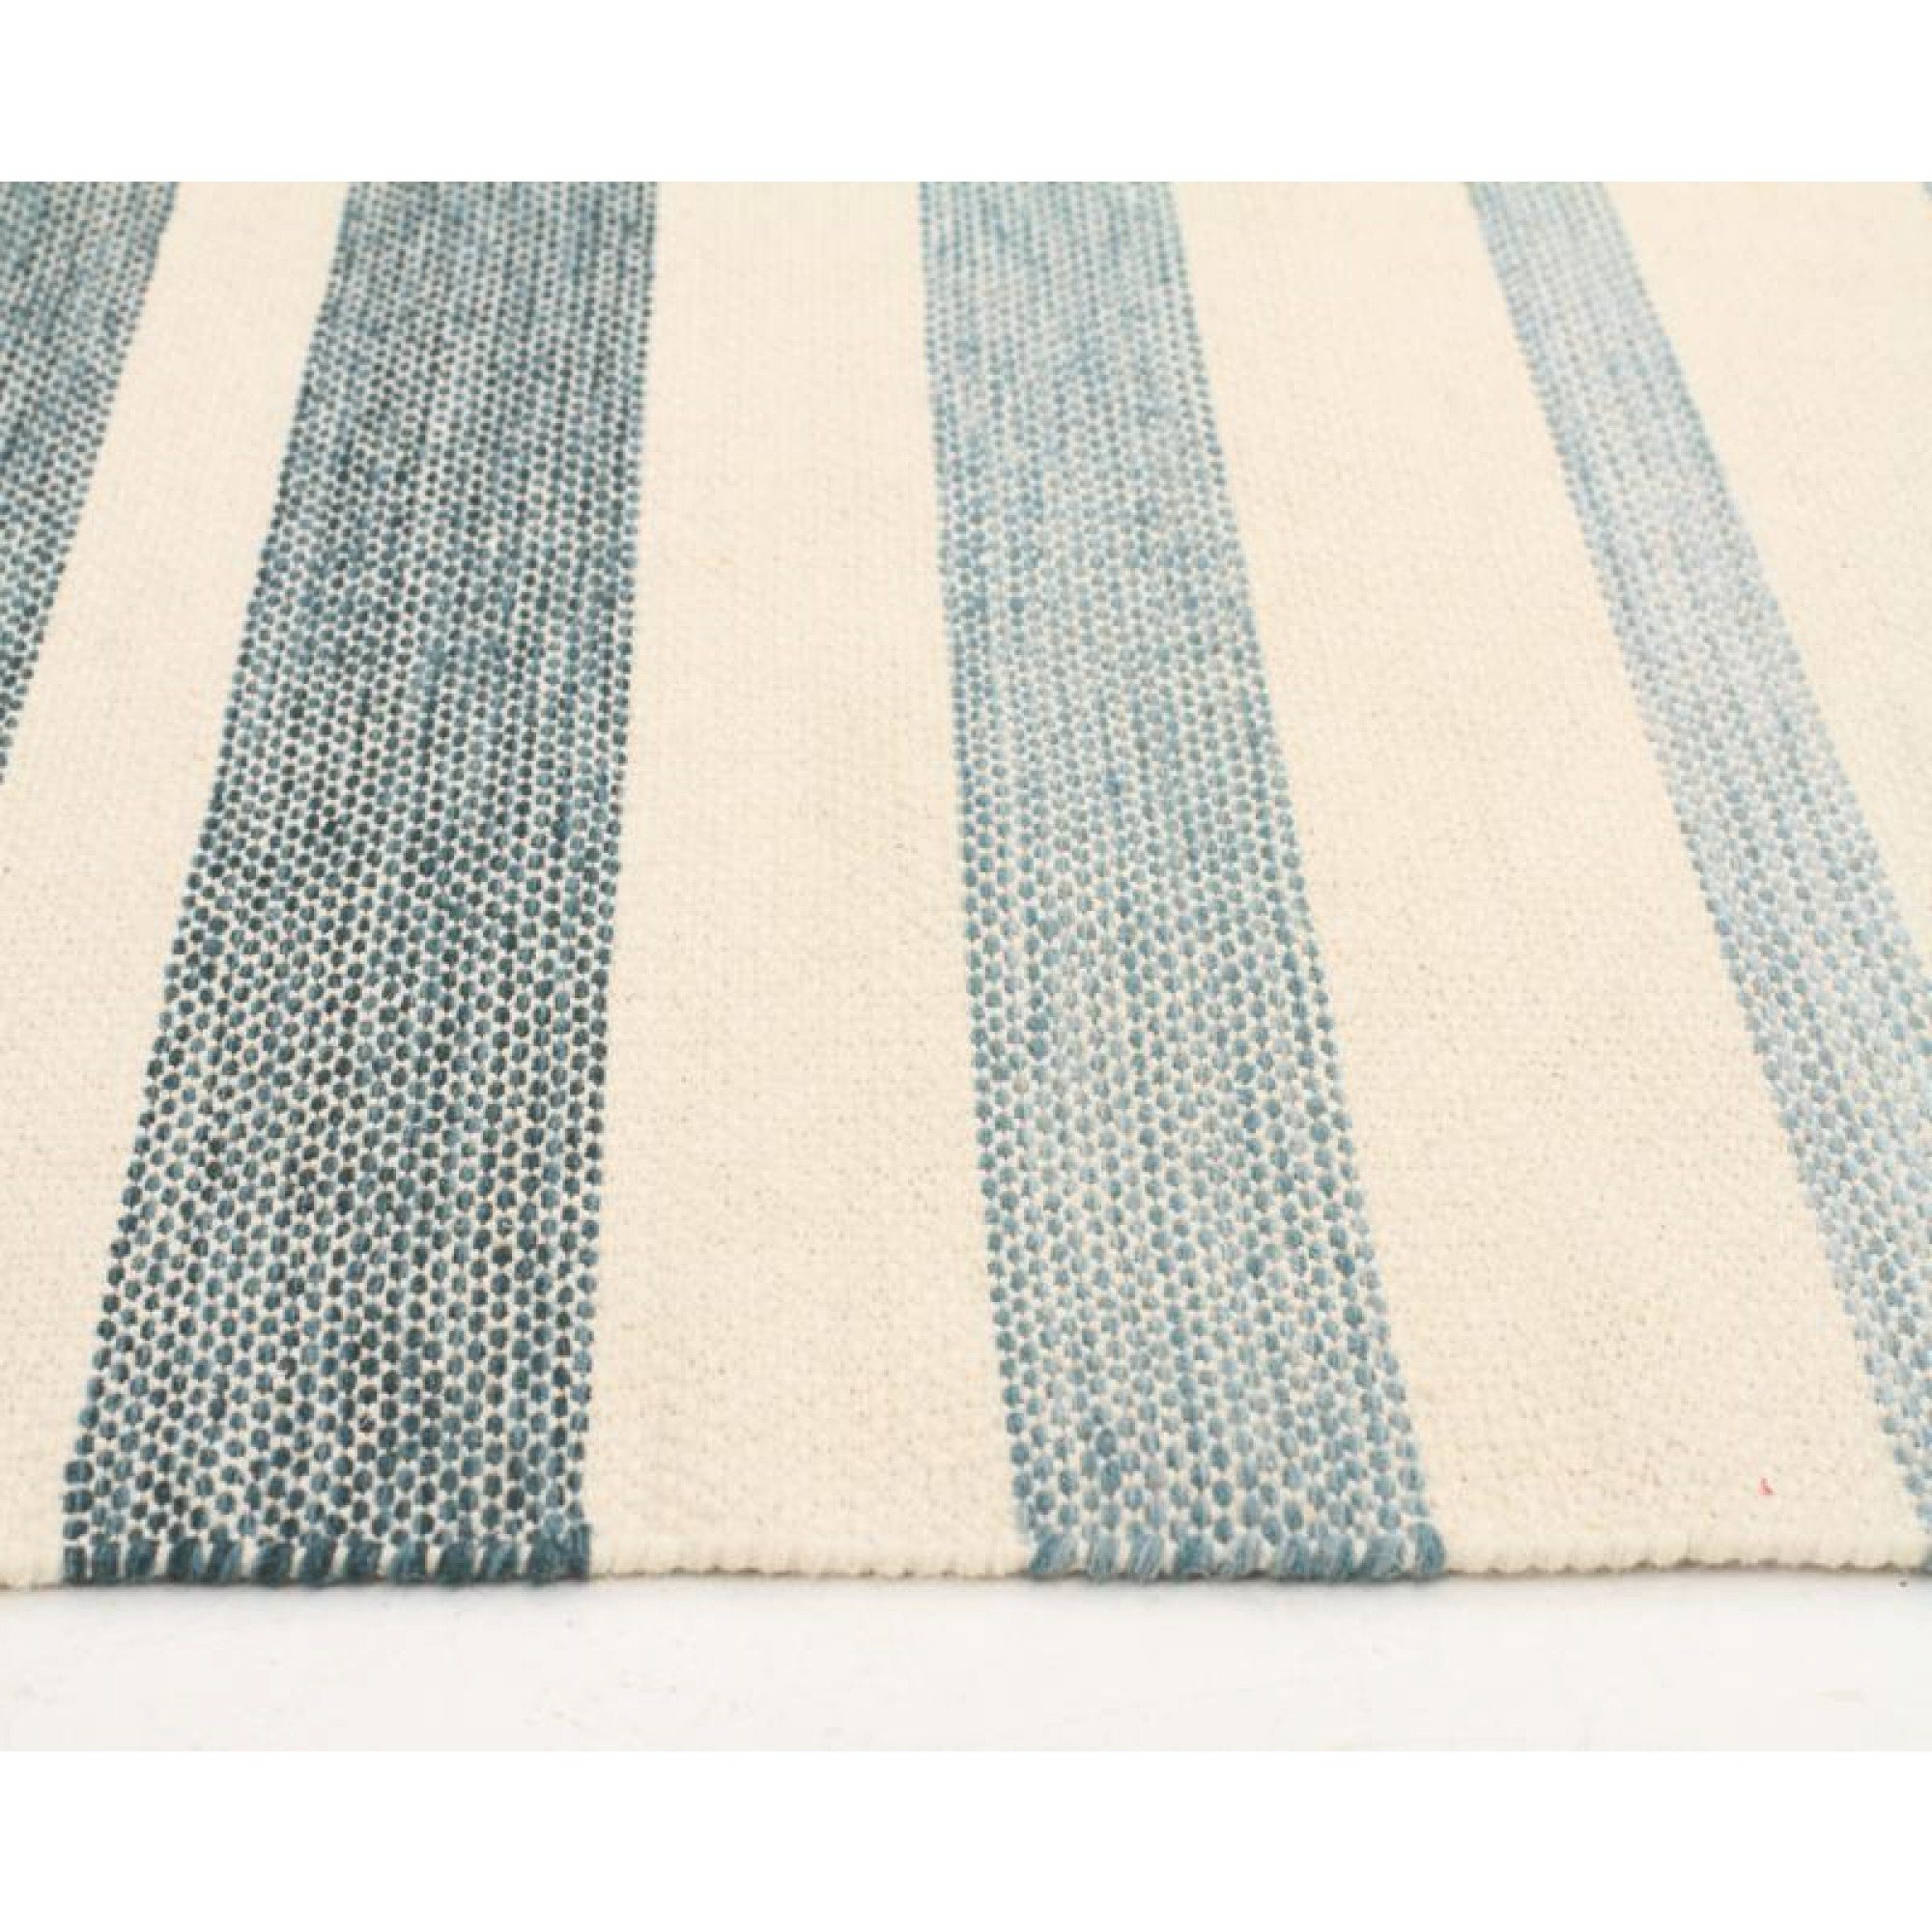 Wool Cotton Herblish Teal Flatweave Floor Area Rug Free Shipping In Flat Weave Wool Area Rugs (#15 of 15)